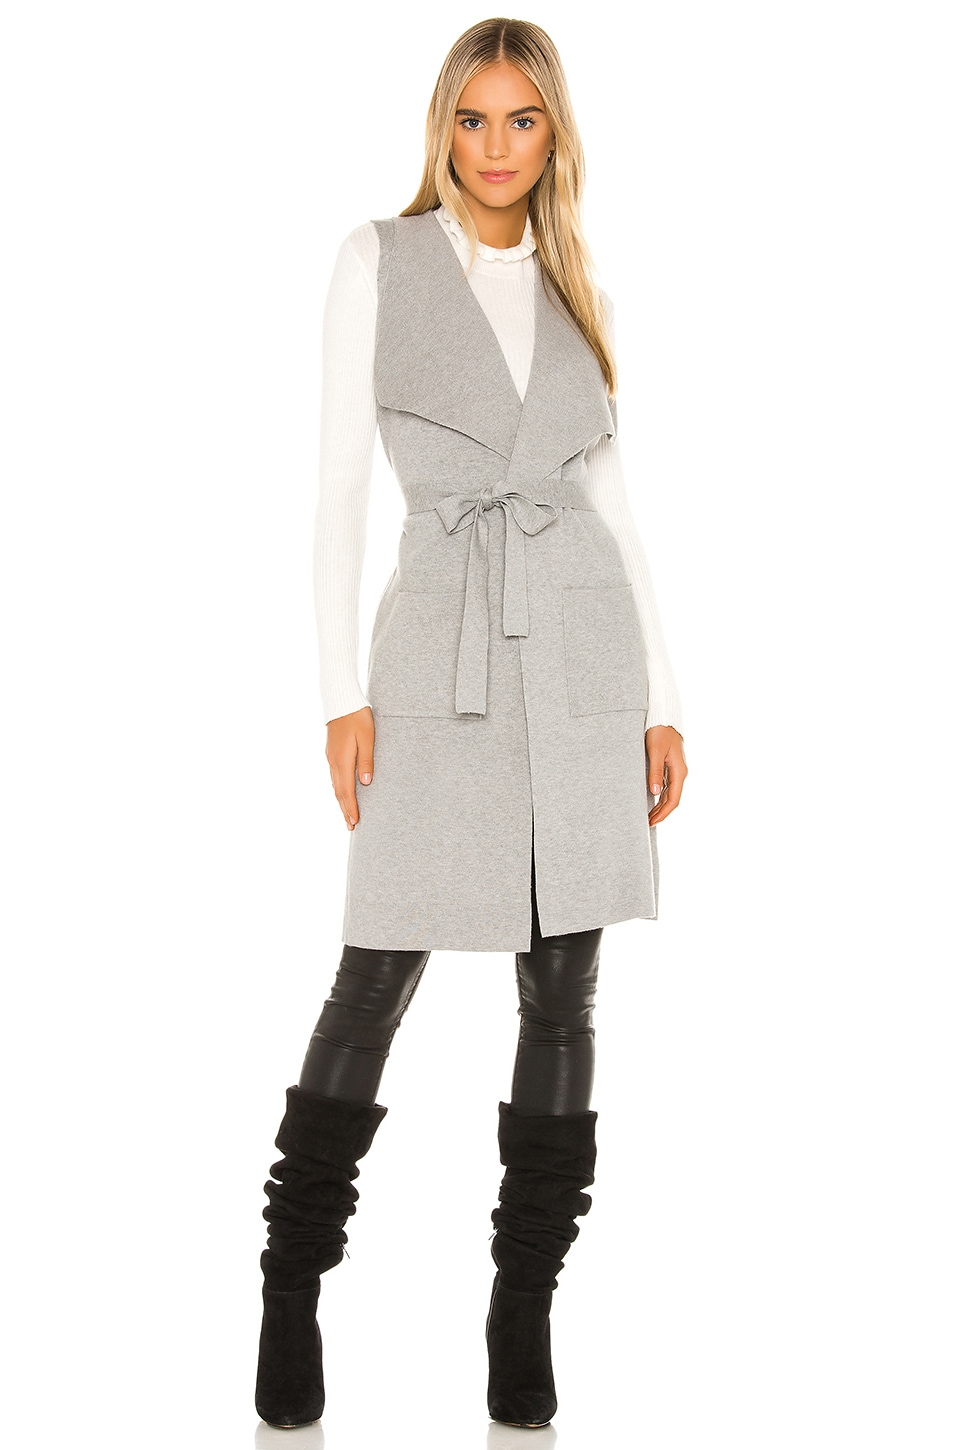 cupcakes and cashmere GILET CARMEN